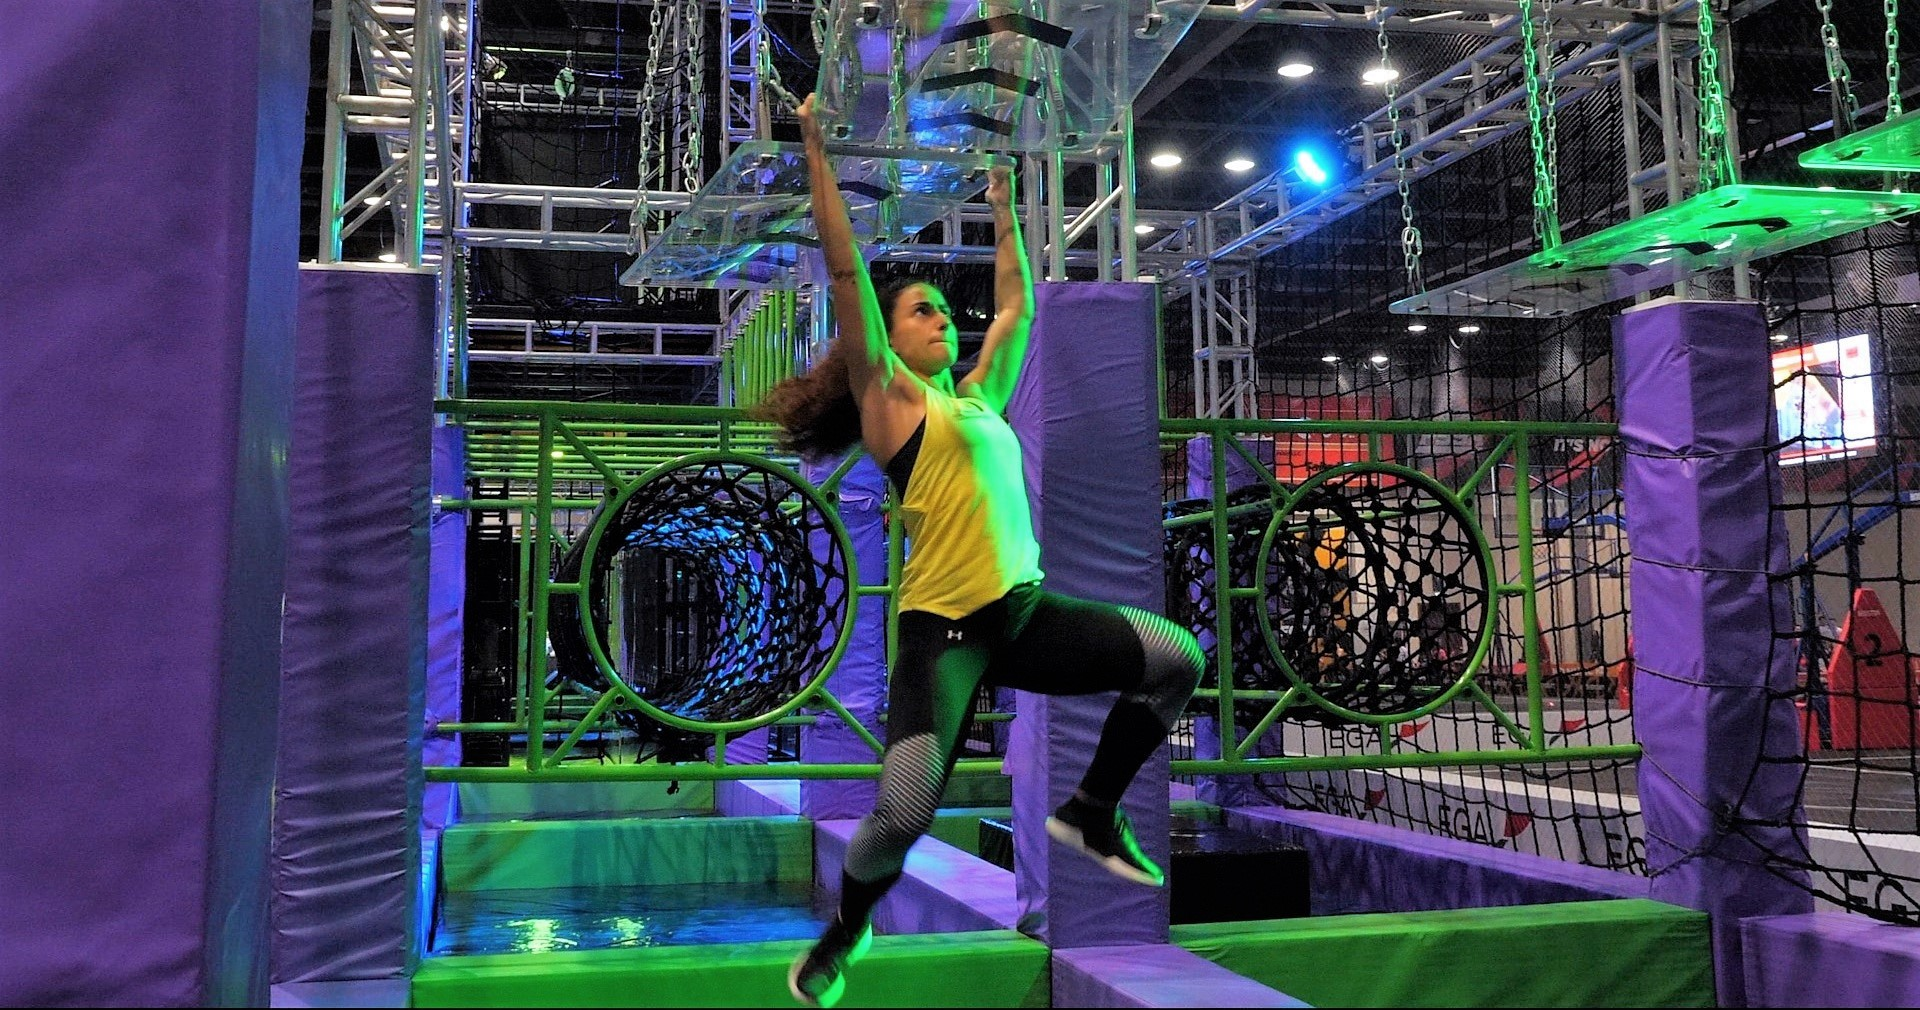 ninja-warrior-obstacle-course-in-dubai-just-play-uae-dubai-sports-world1